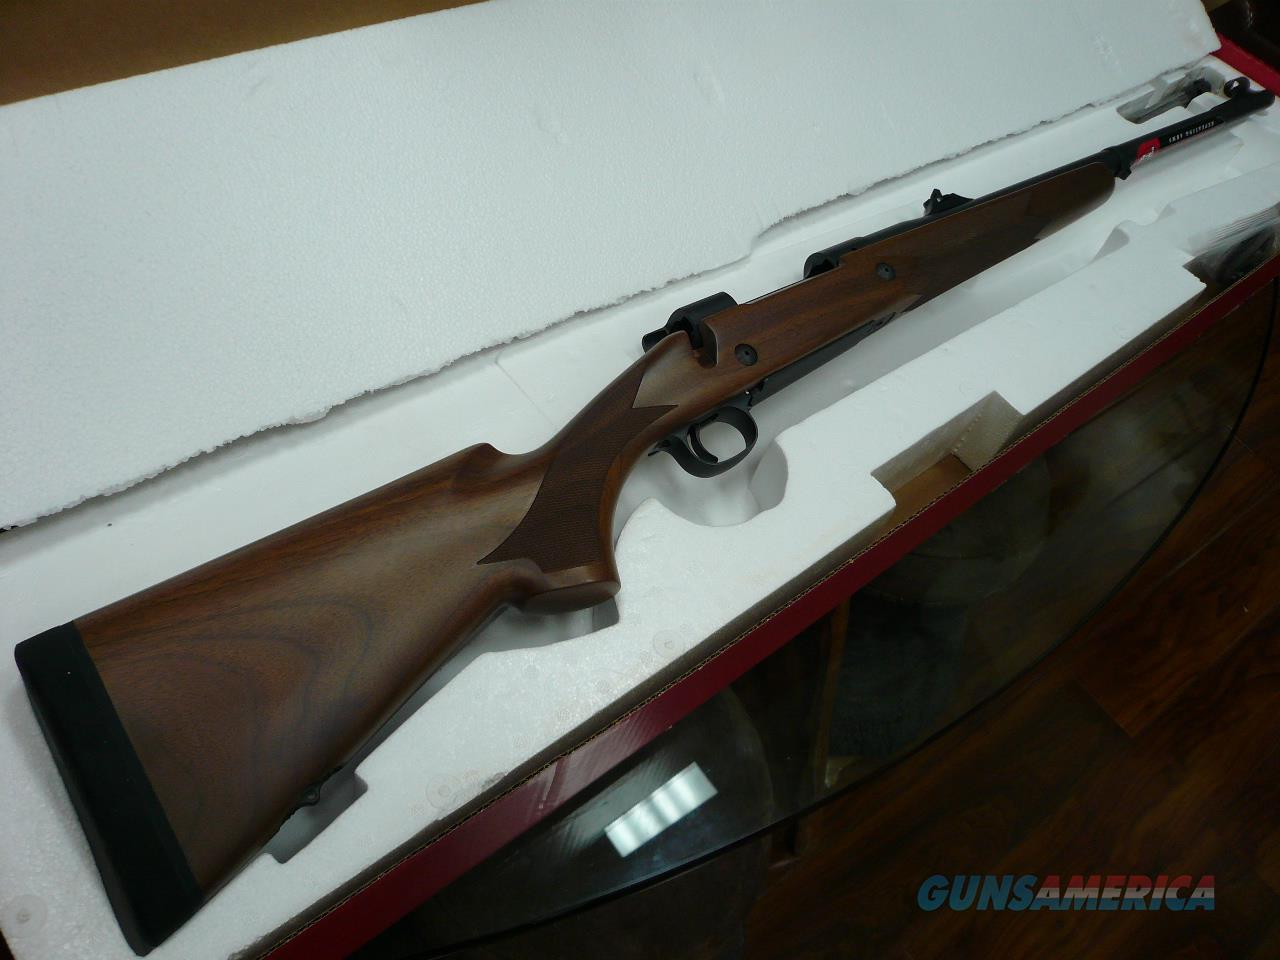 Model-70/Safari Express 458WinMag NIB  Guns > Rifles > Winchester Rifles - Modern Bolt/Auto/Single > Model 70 > Post-64